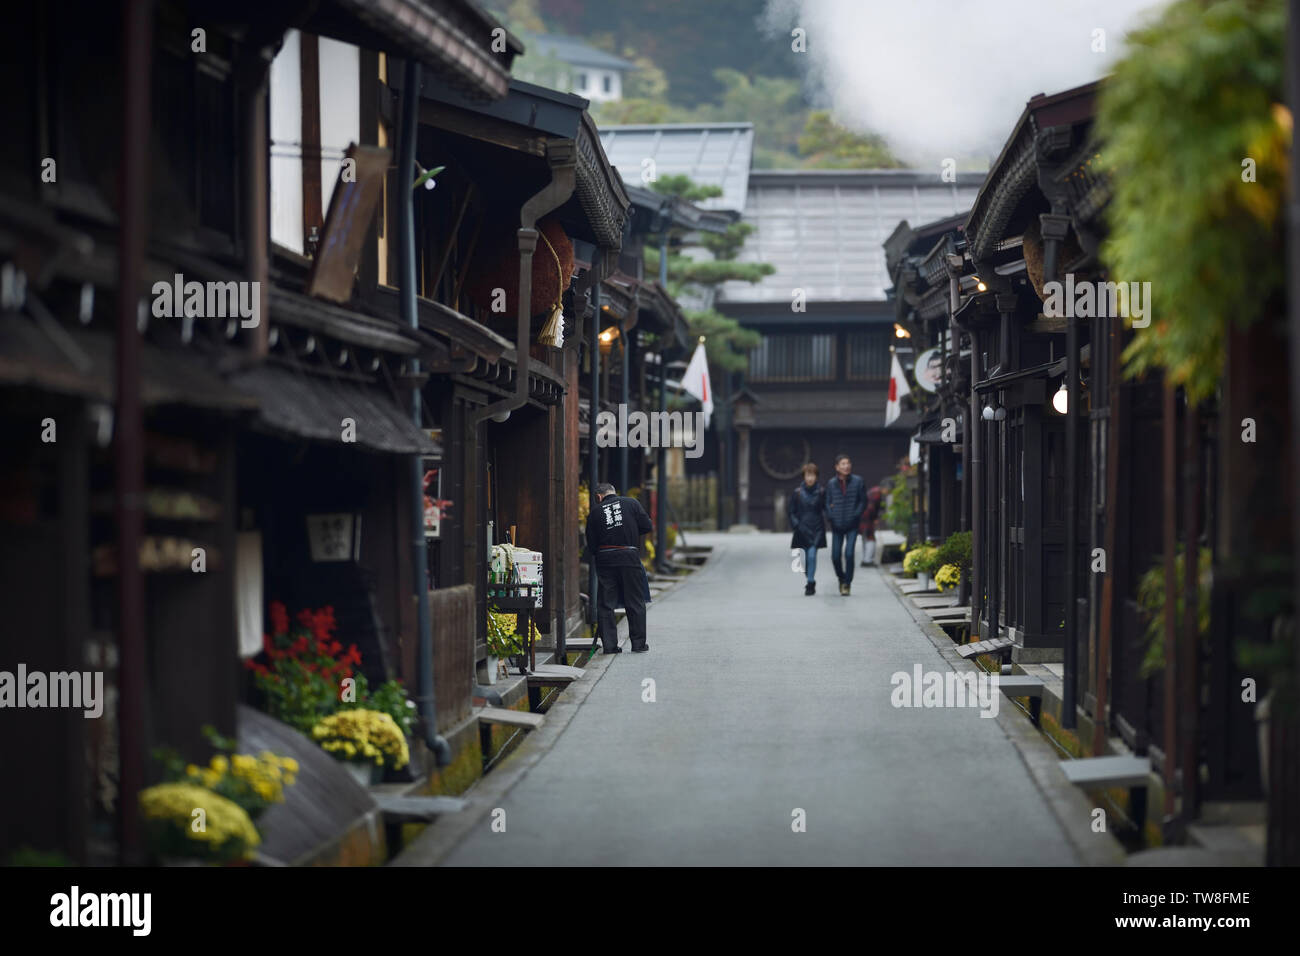 Morning scenery of Kamisannomachi, old town merchant street in Takayama city. Sake brewery owner is cleaning his shop and a couple walking - Stock Image